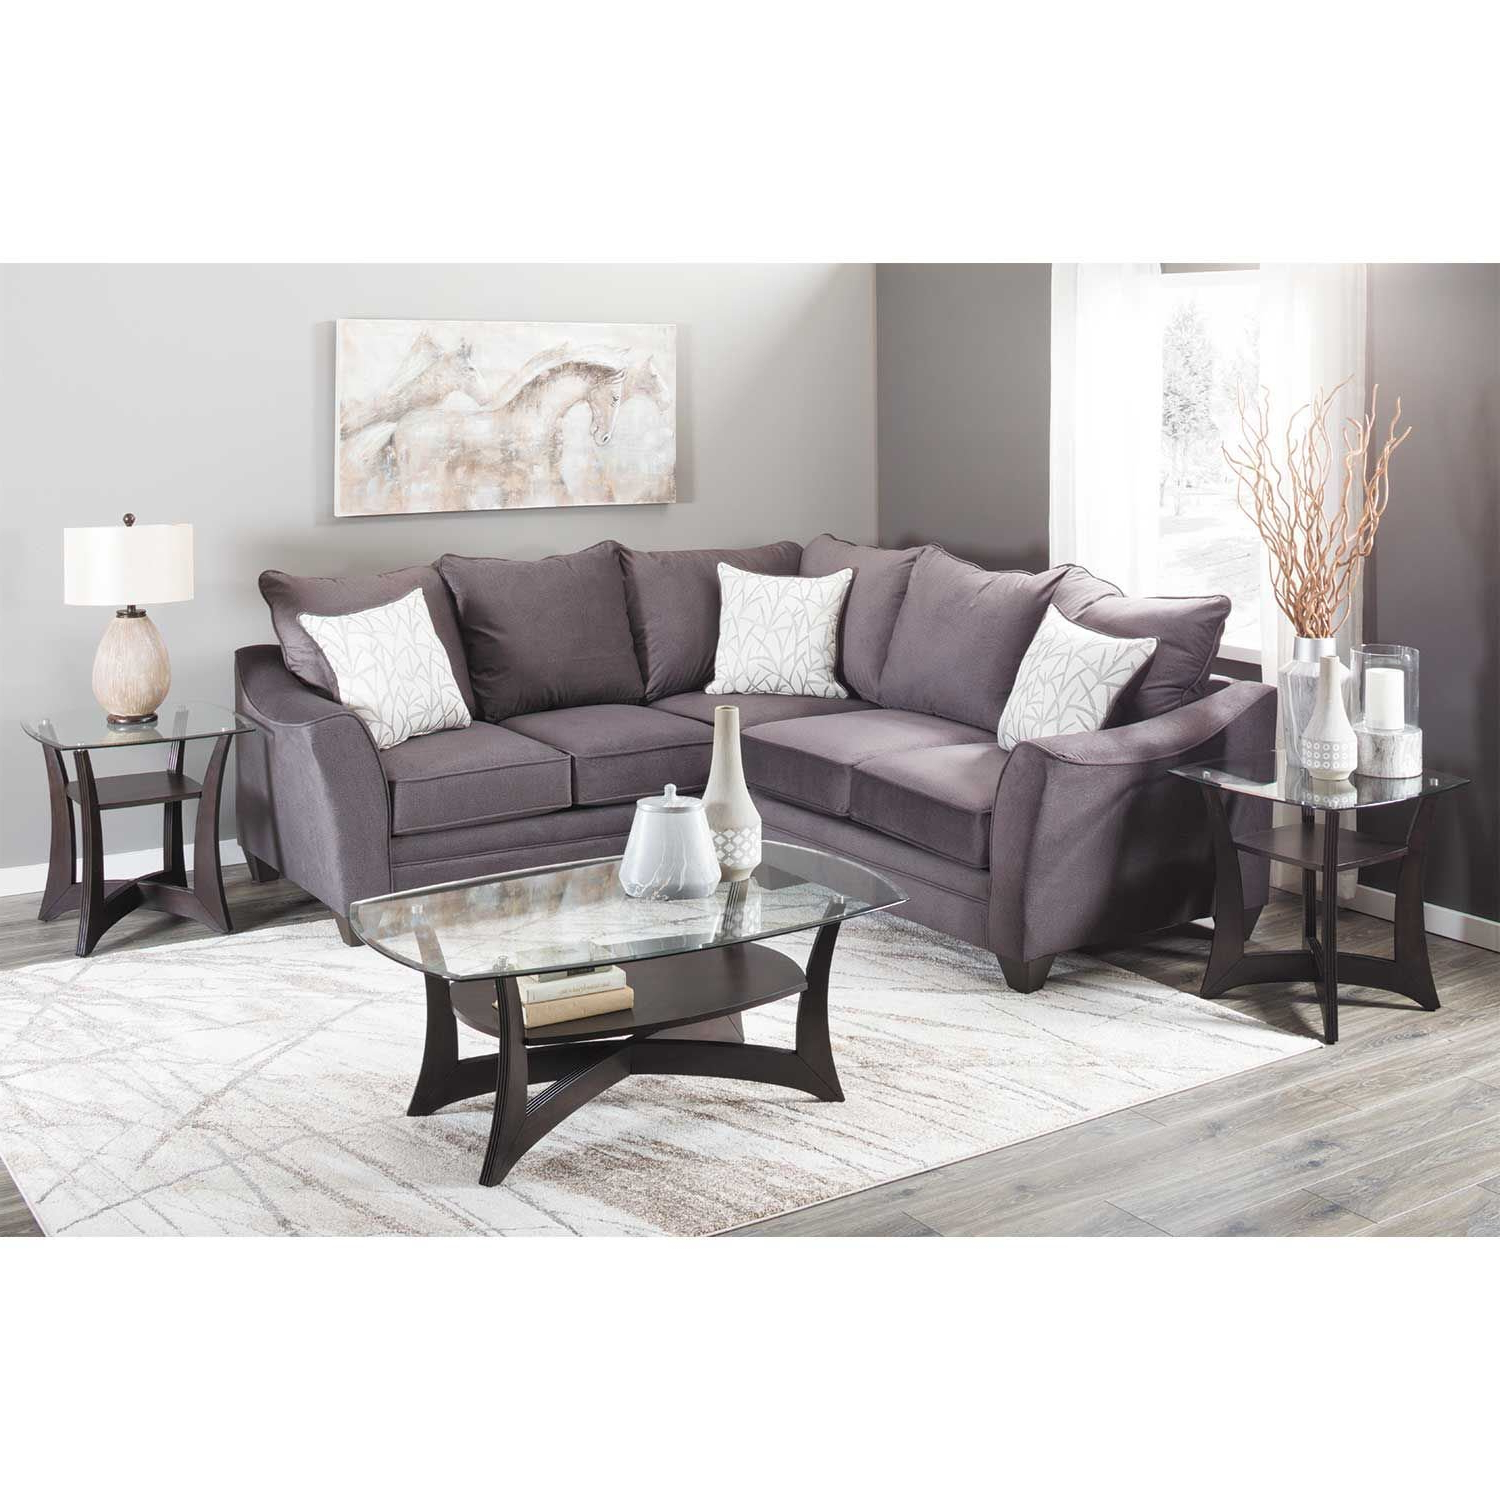 American Inside Cosmos Grey 2 Piece Sectionals With Laf Chaise (View 7 of 20)